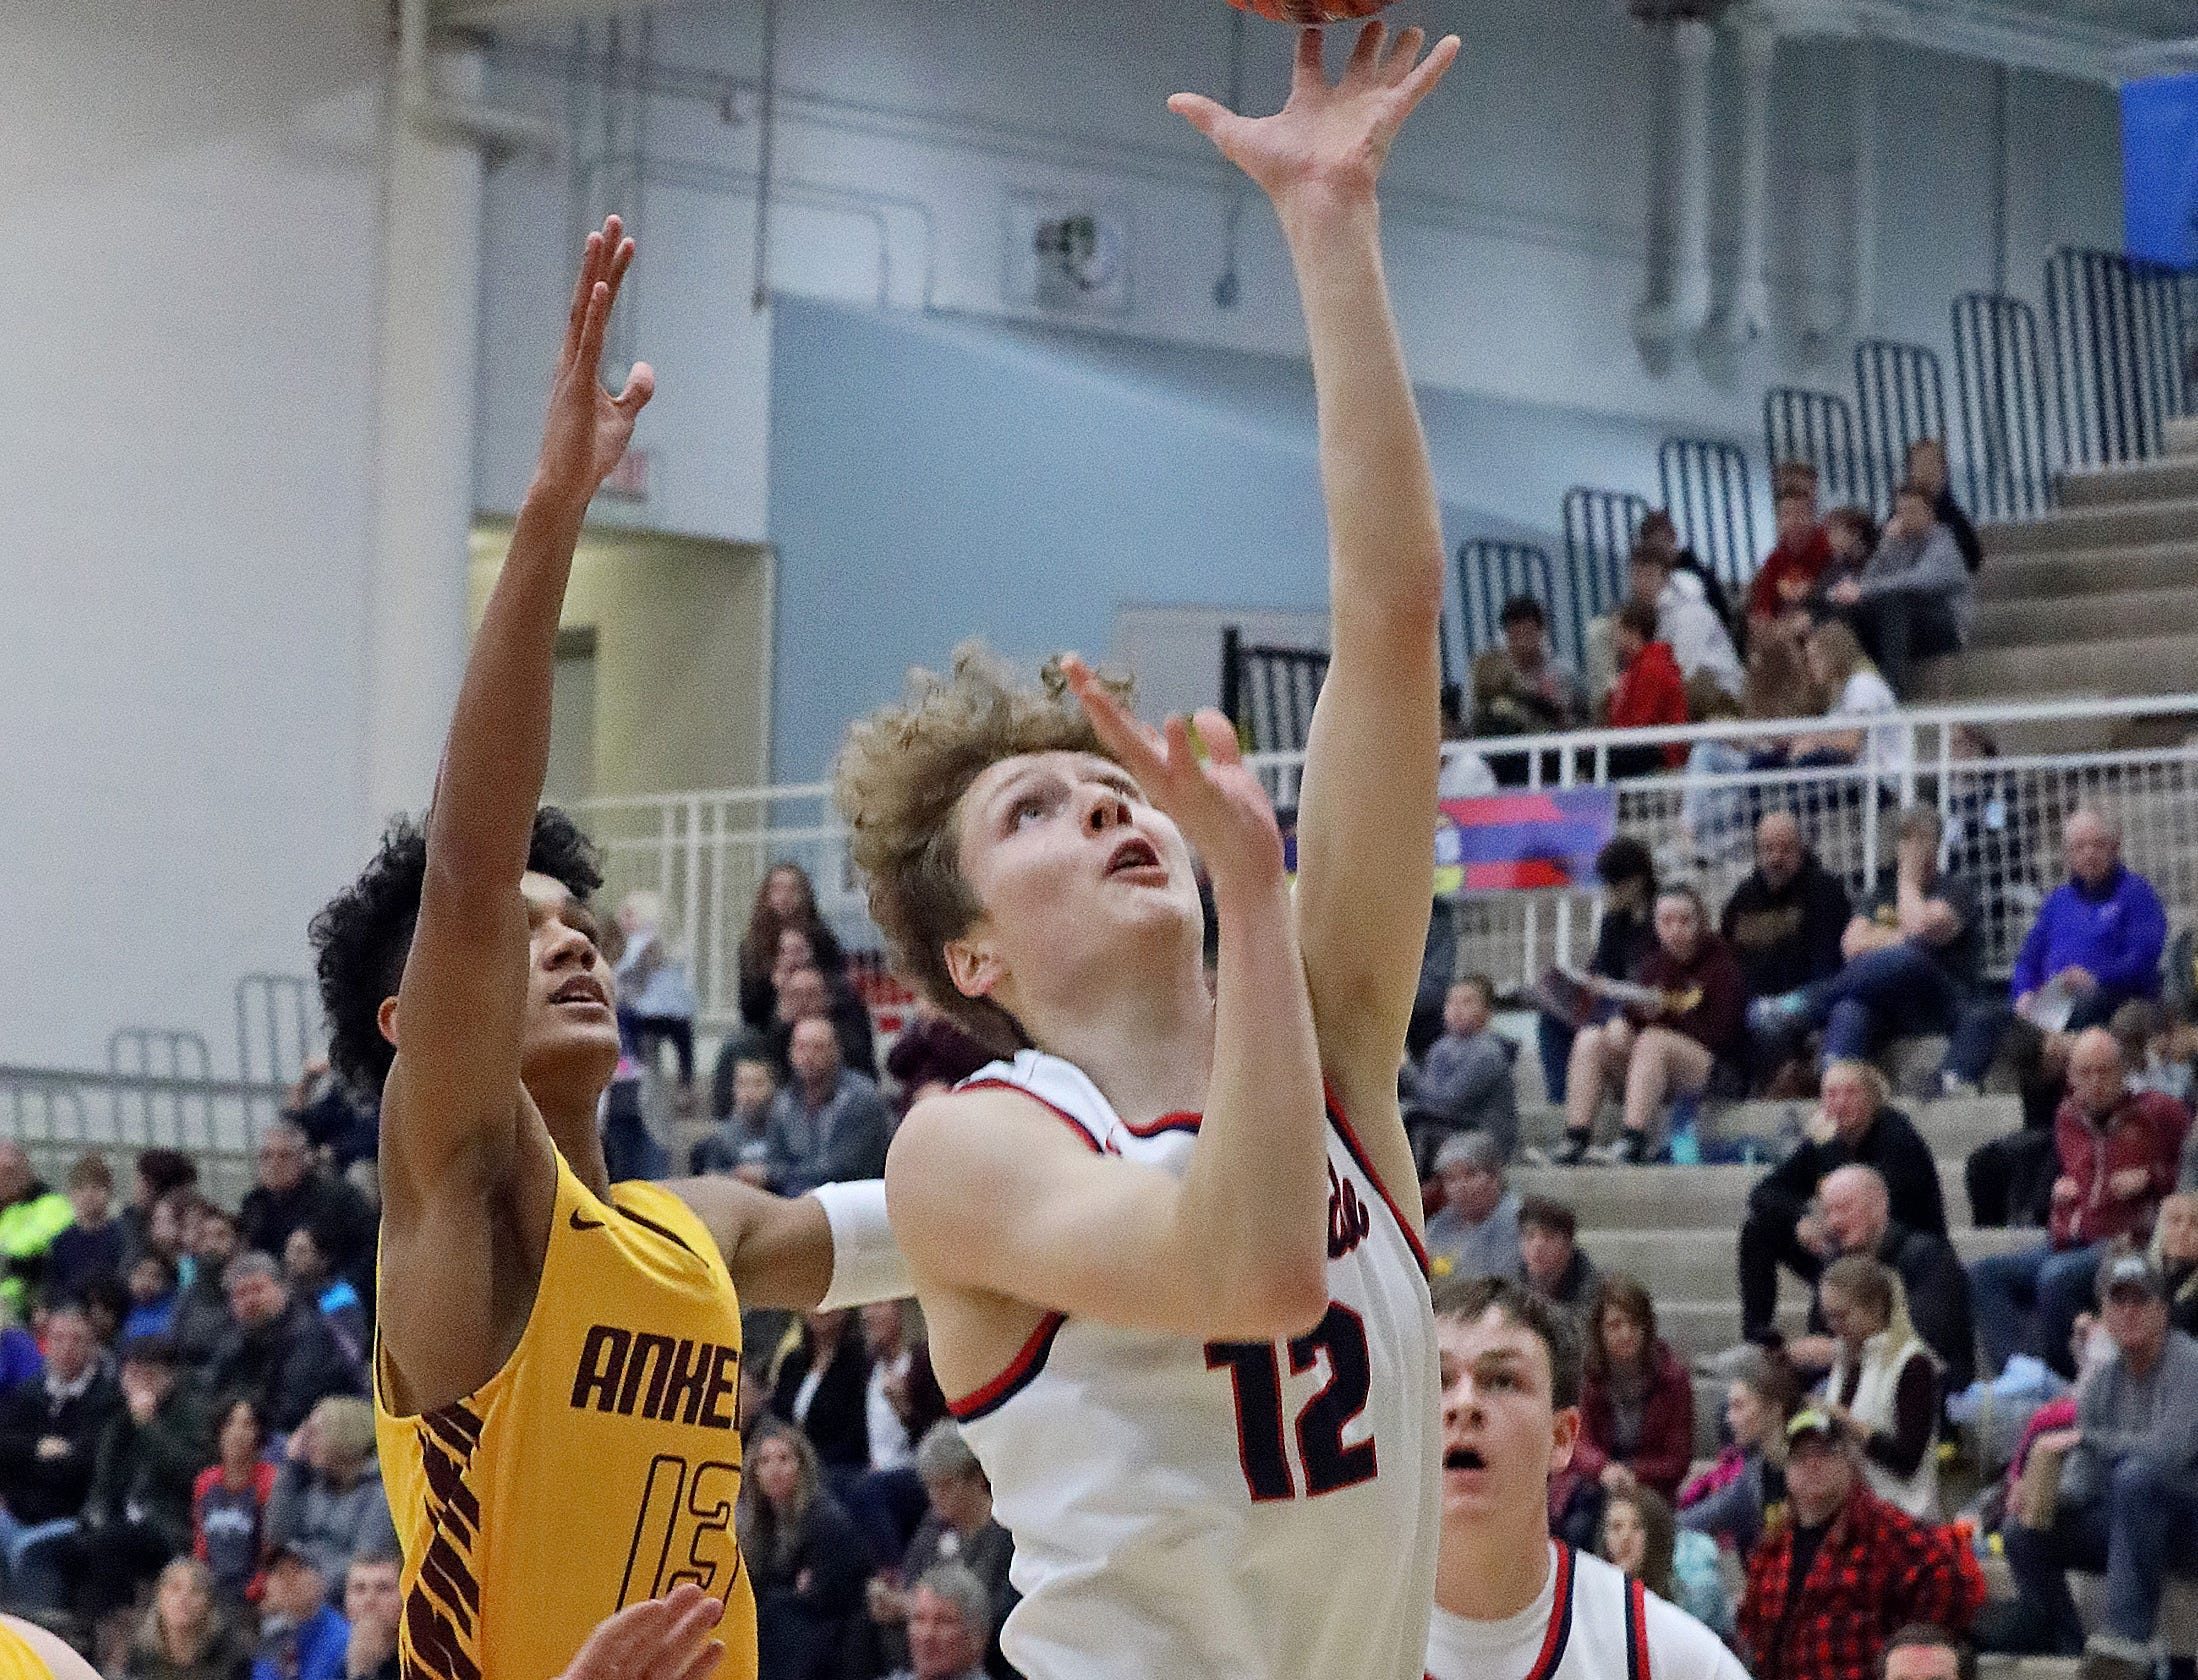 Urbandale junior guard Seth Anderson scores as the Ankeny Hawks compete against the Urbandale J-Hawks in high school basketball on Friday, Dec. 14, 2018 at Urbandale High School.